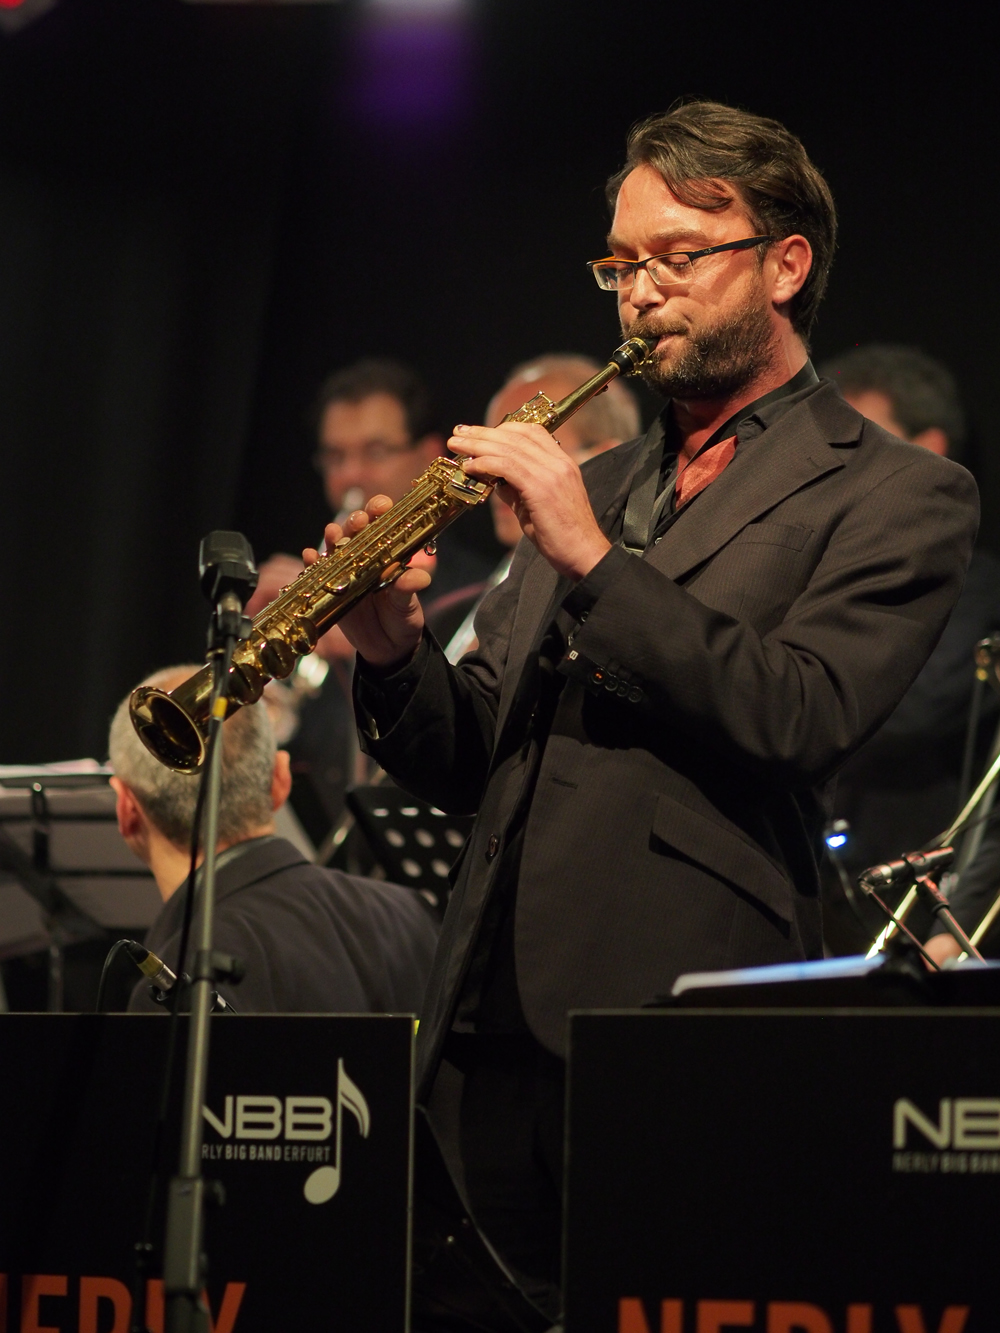 Nerly Big Band